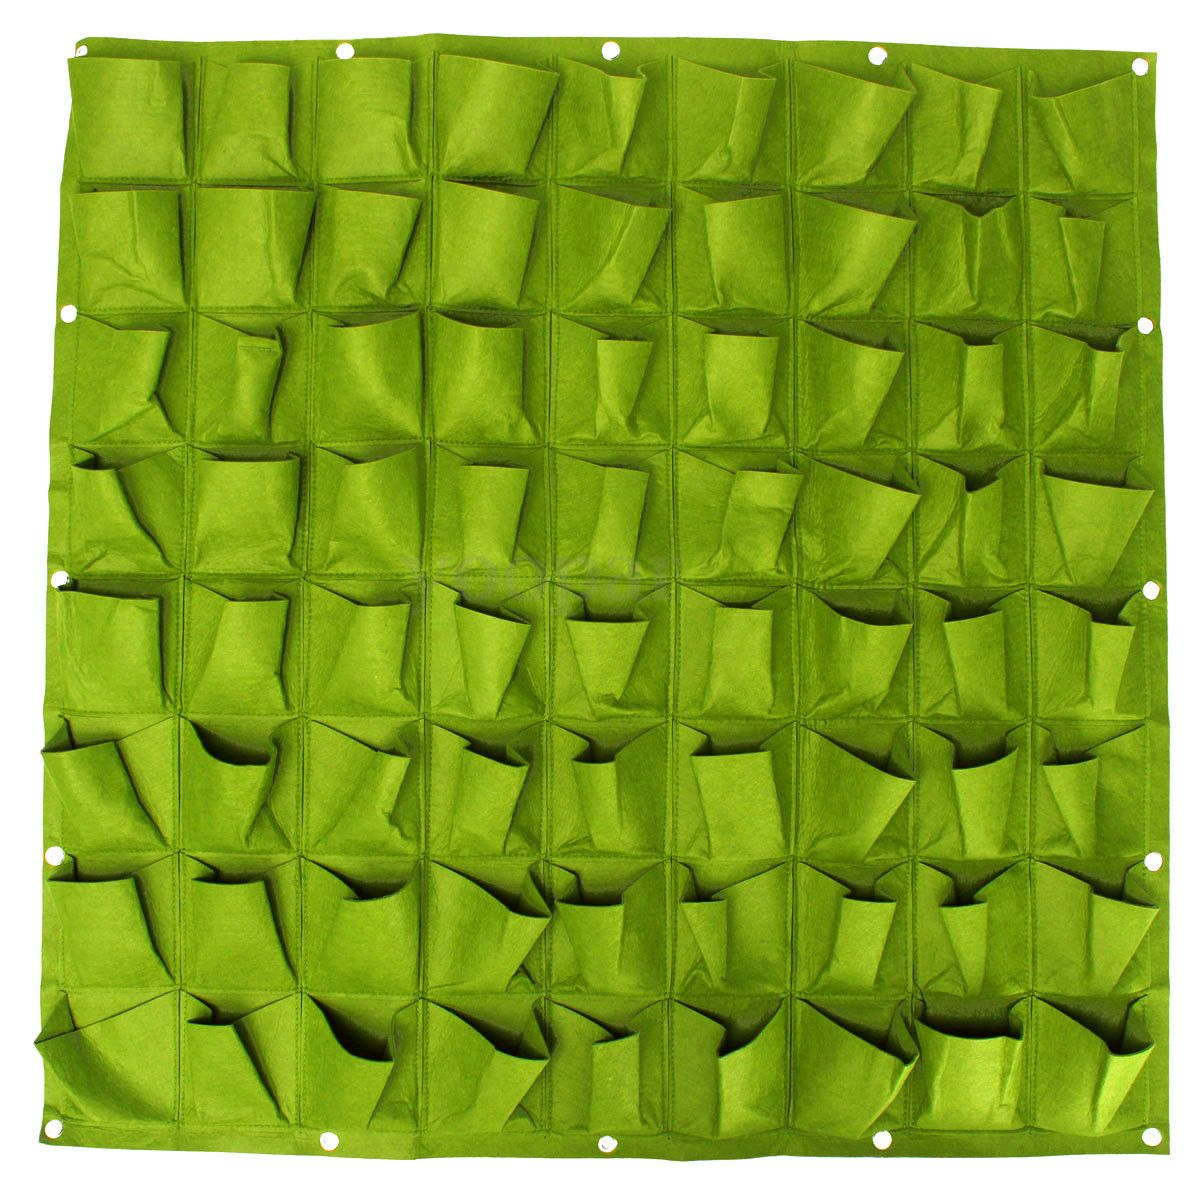 72 Pocket Planting Bag Wall Vertical Greening Hanging Garden Outdoor Plant 1*1M(Green)